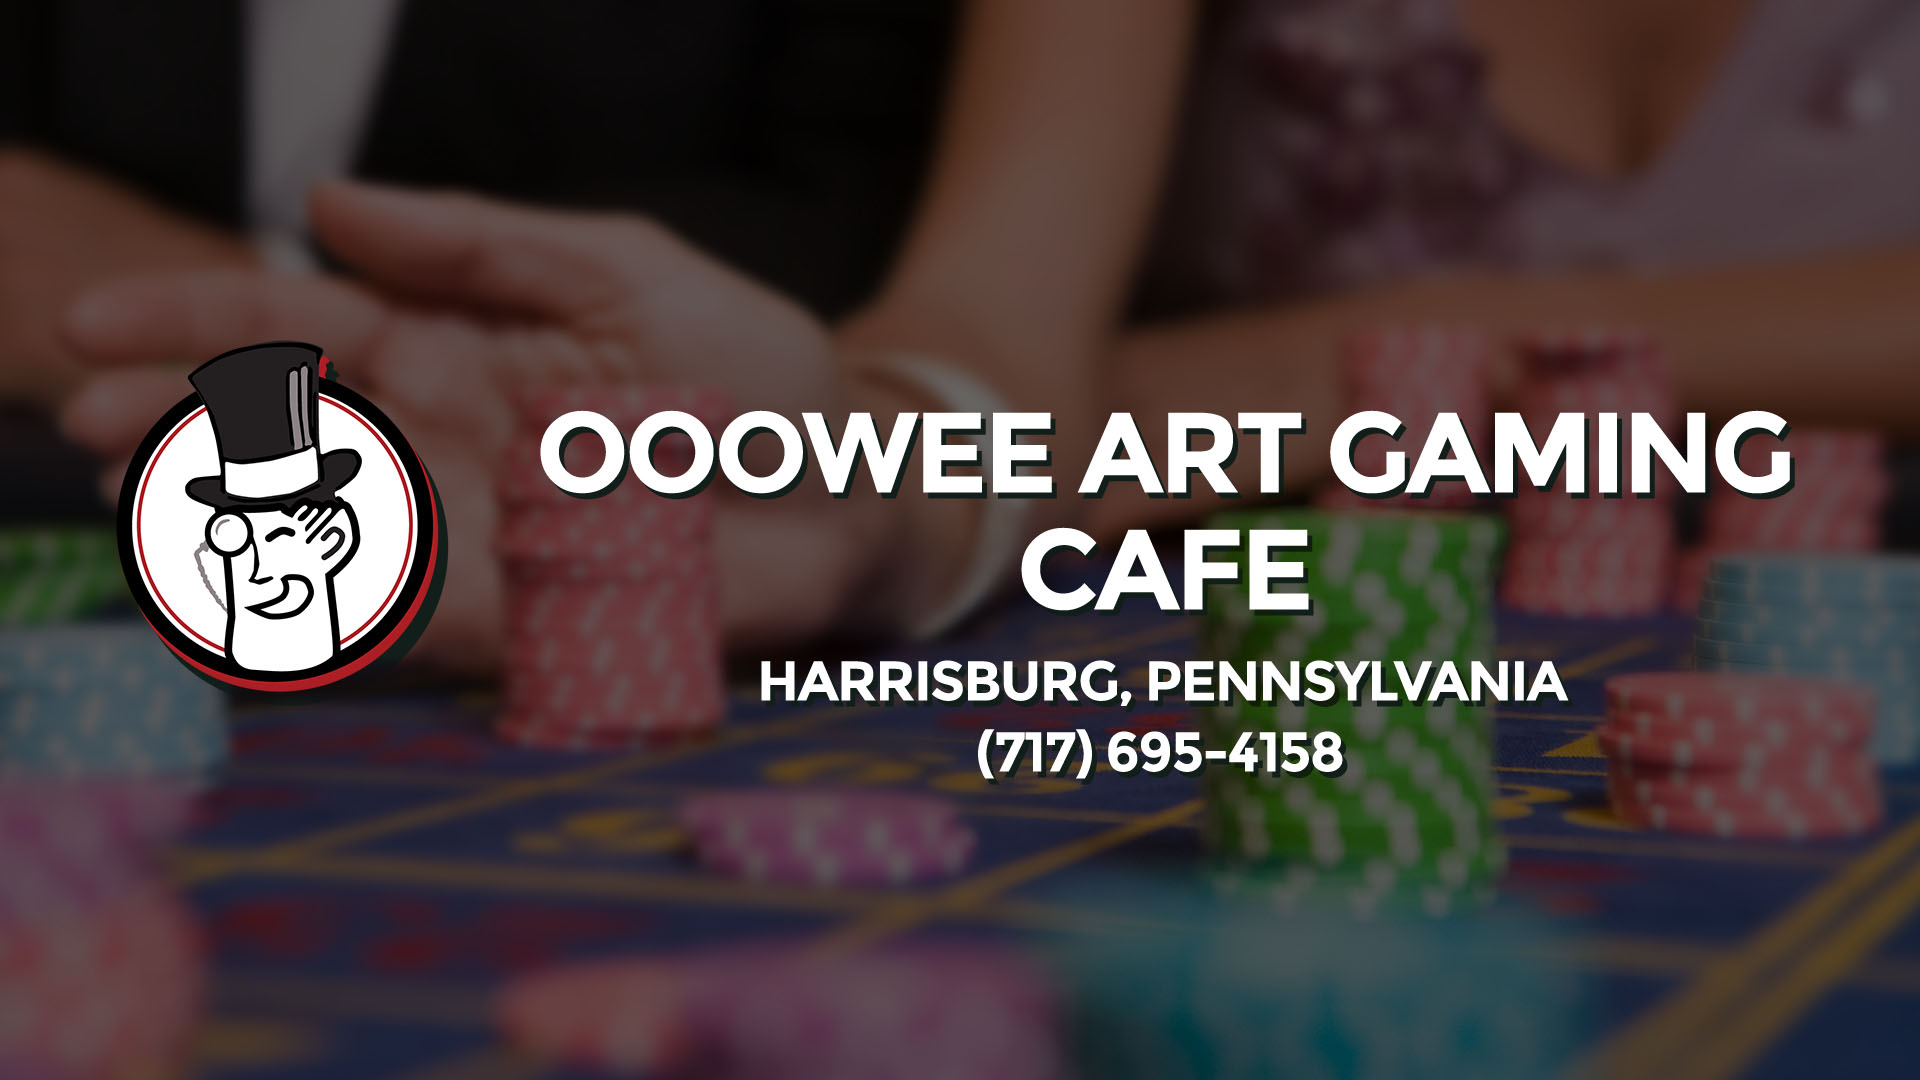 OOOWEE ART  GAMING CAFE HARRISBURG PA